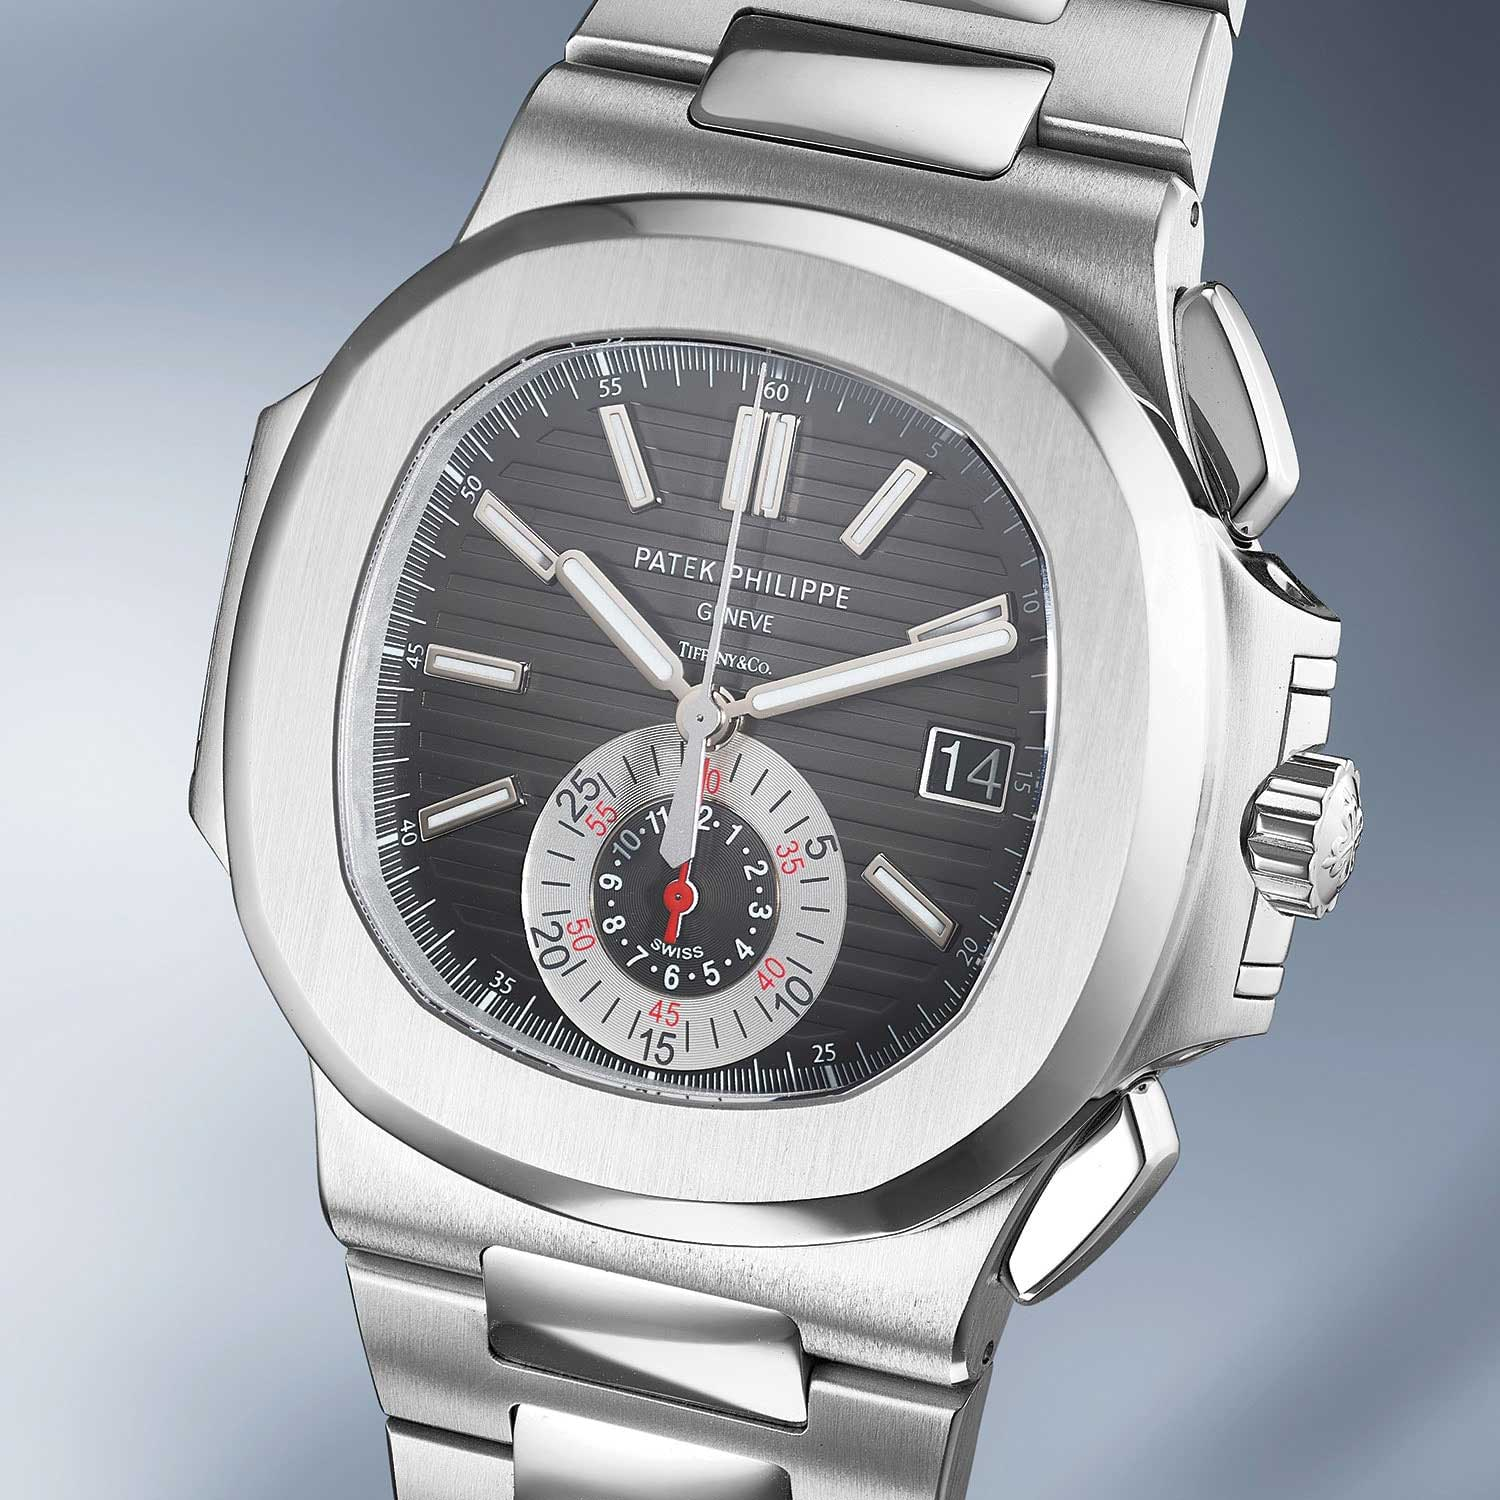 Lot 27: Patek Philippe Ref. 5980/1A. A rare and attractive stainless steel chronograph wristwatch with date and bracelet